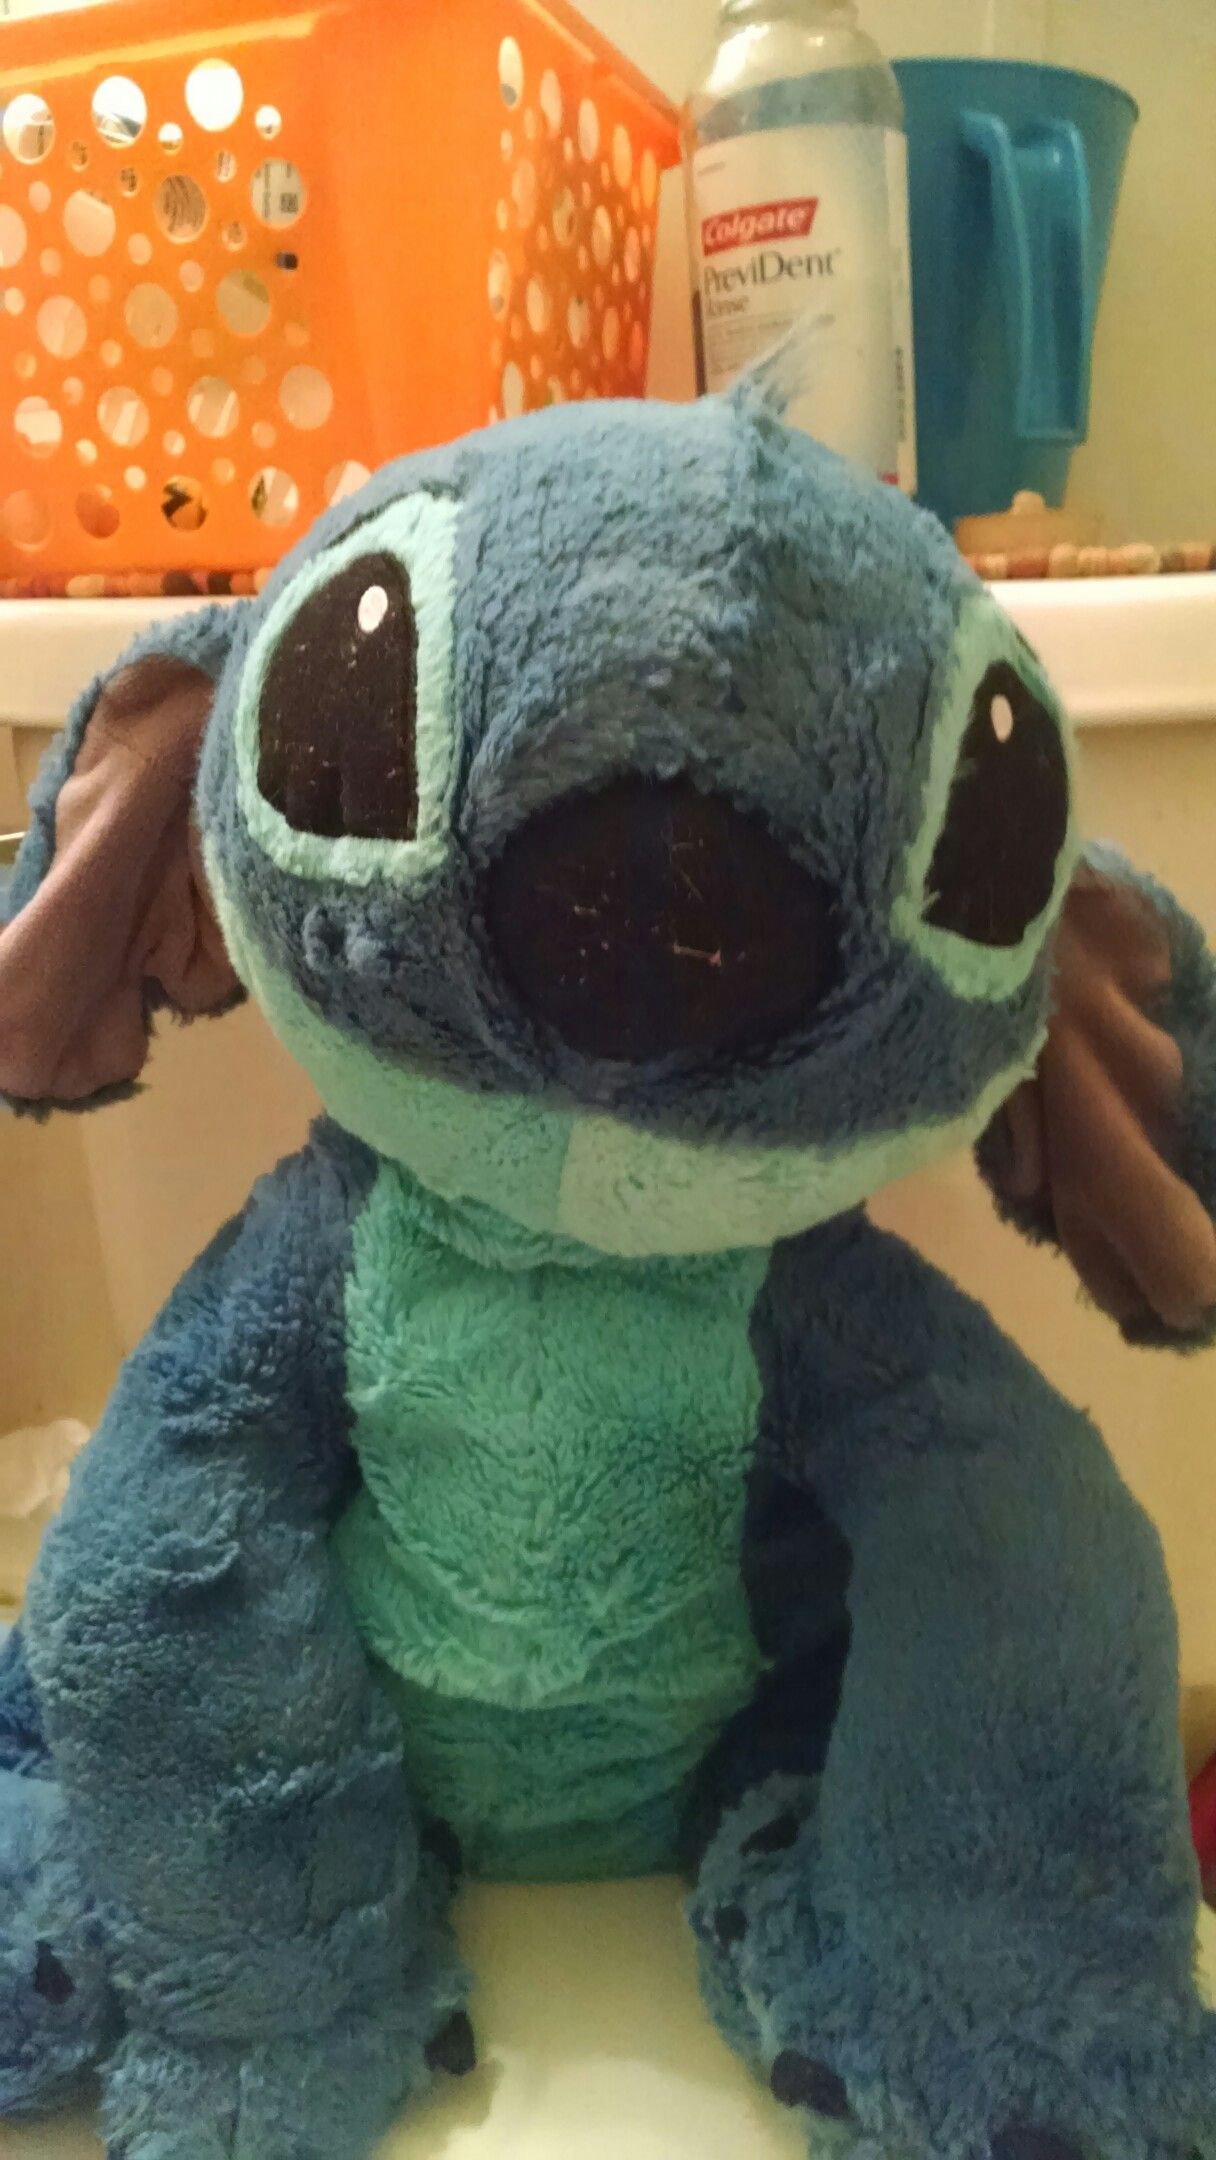 This stuff animal is found at Disney world Orlando Florida. Join me and get one